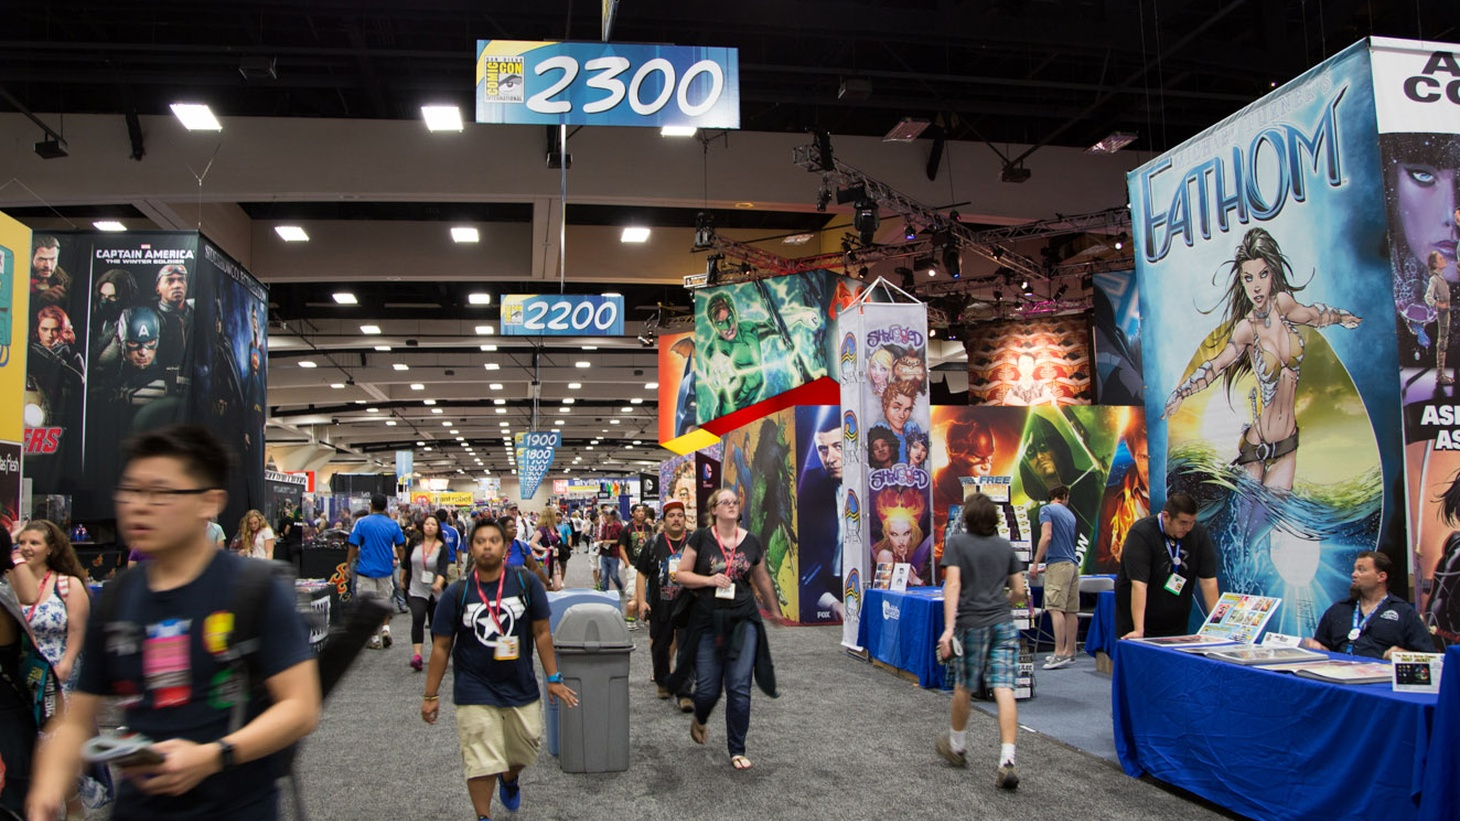 The San Diego Comic Con is underway! That's great news for many geeks making their annual pilgrimage. But to other veteran comic fans, the event has given-in to crass commercialism.       image: Comic Con 2014 by Pat Loika